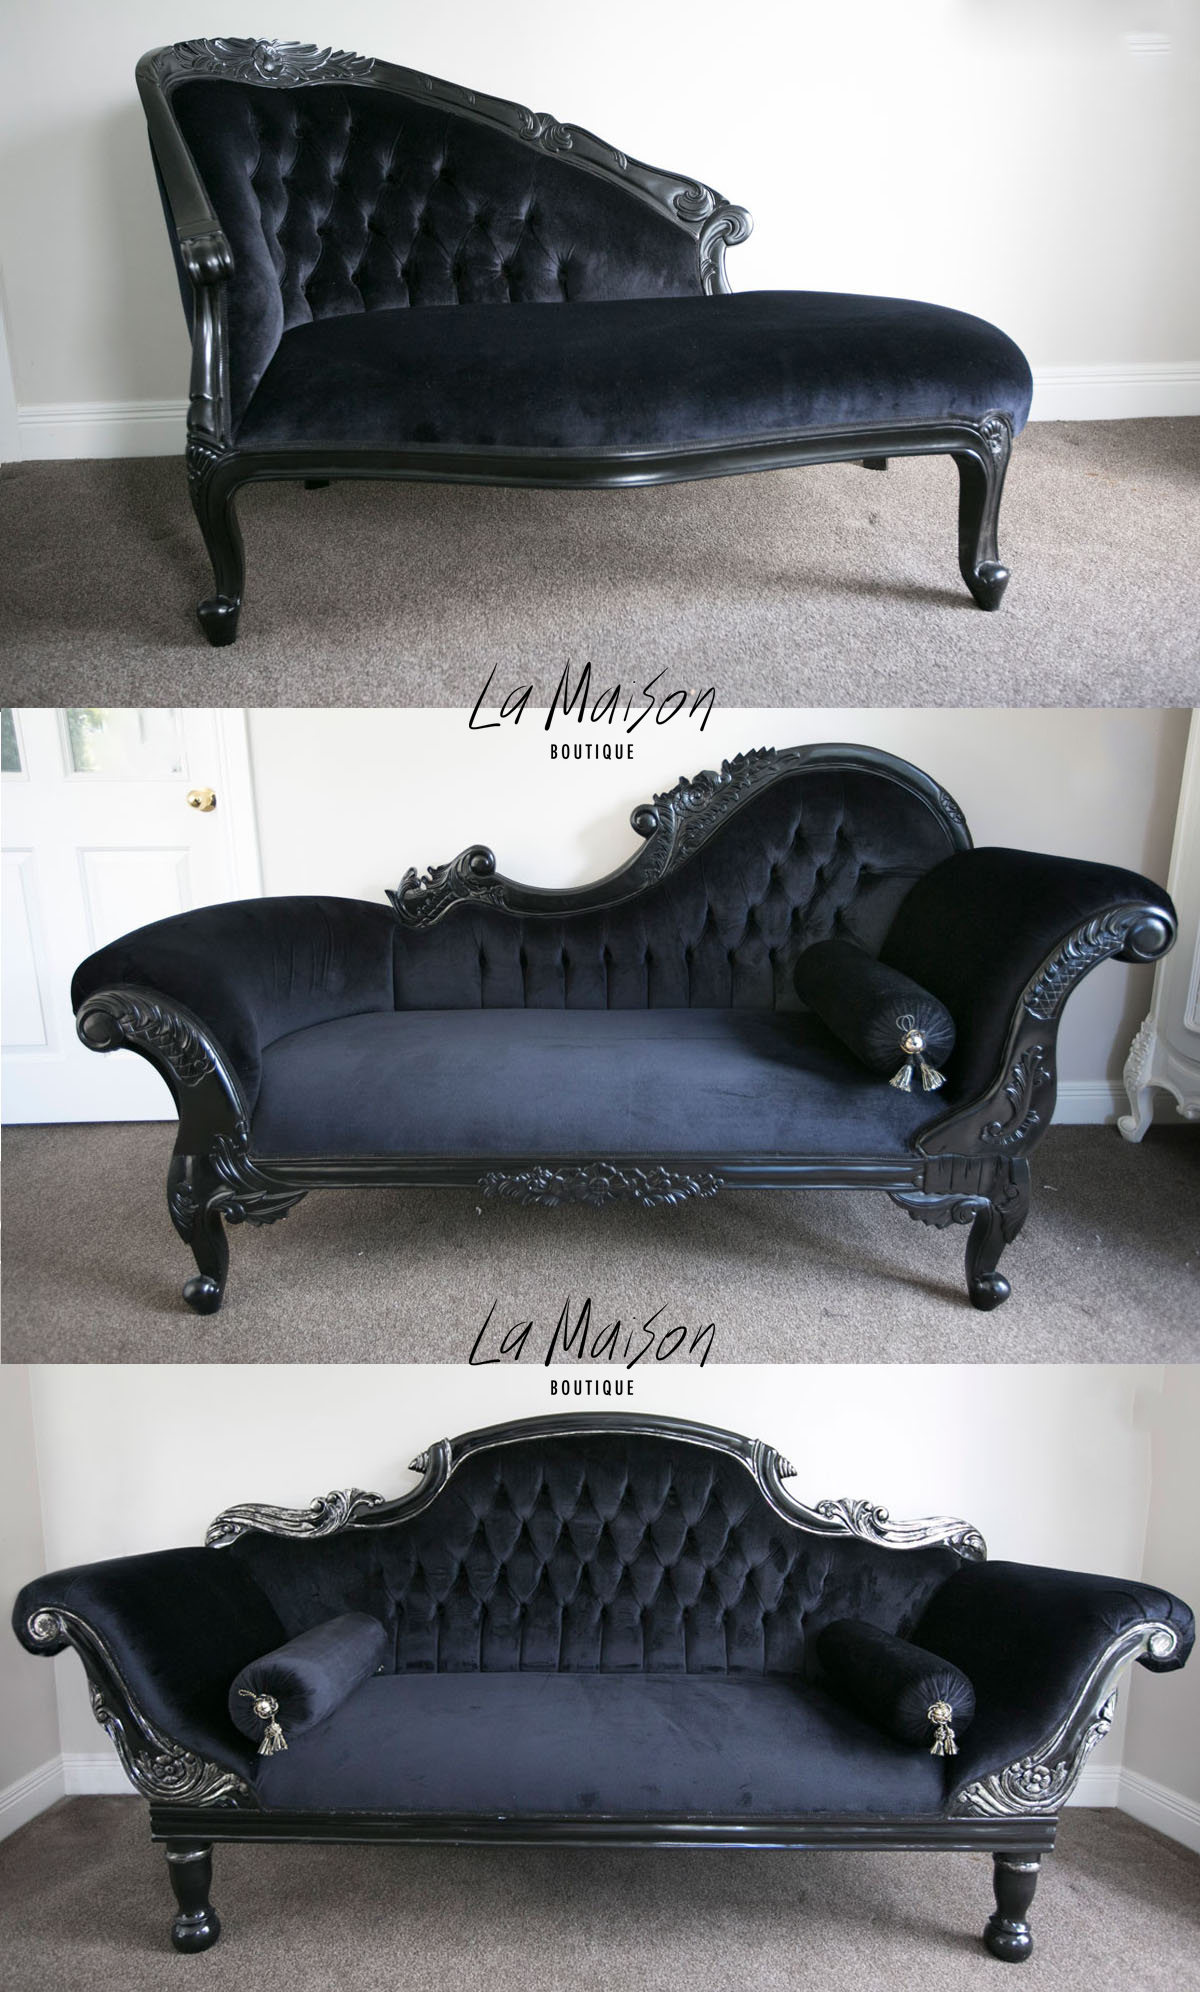 How to style a chaise longue la maison boutique for Chaise lounge black